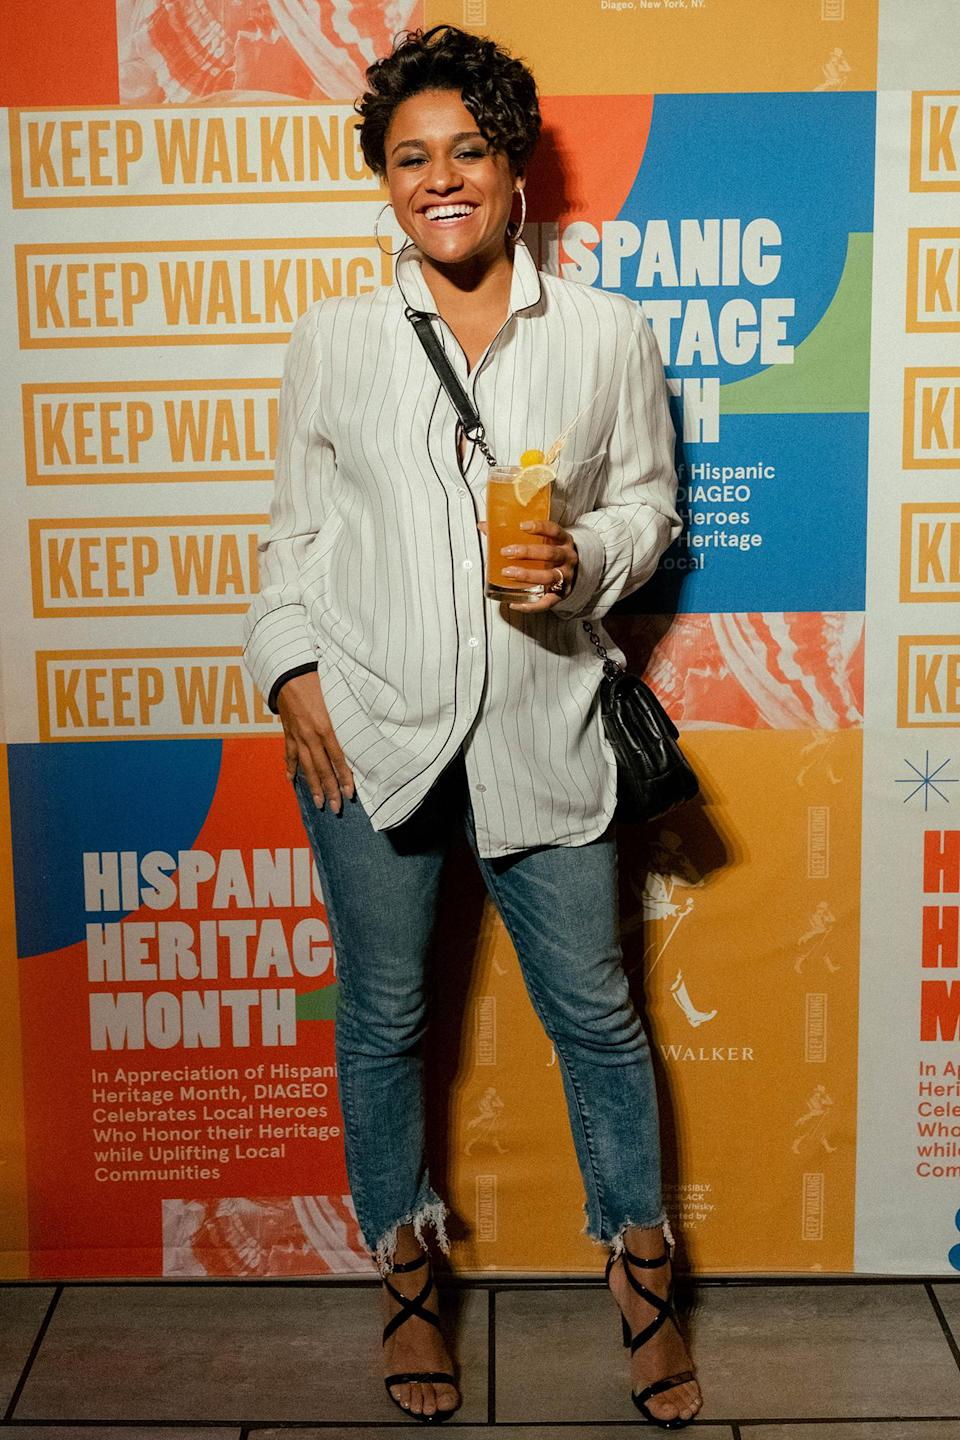 <p>Ariana DeBose toasts to Hispanic Heritage Month with DIAGEO and Johnnie Walker to celebrate Latinas in food and art on Oct. 7 in The Bronx, New York.</p>